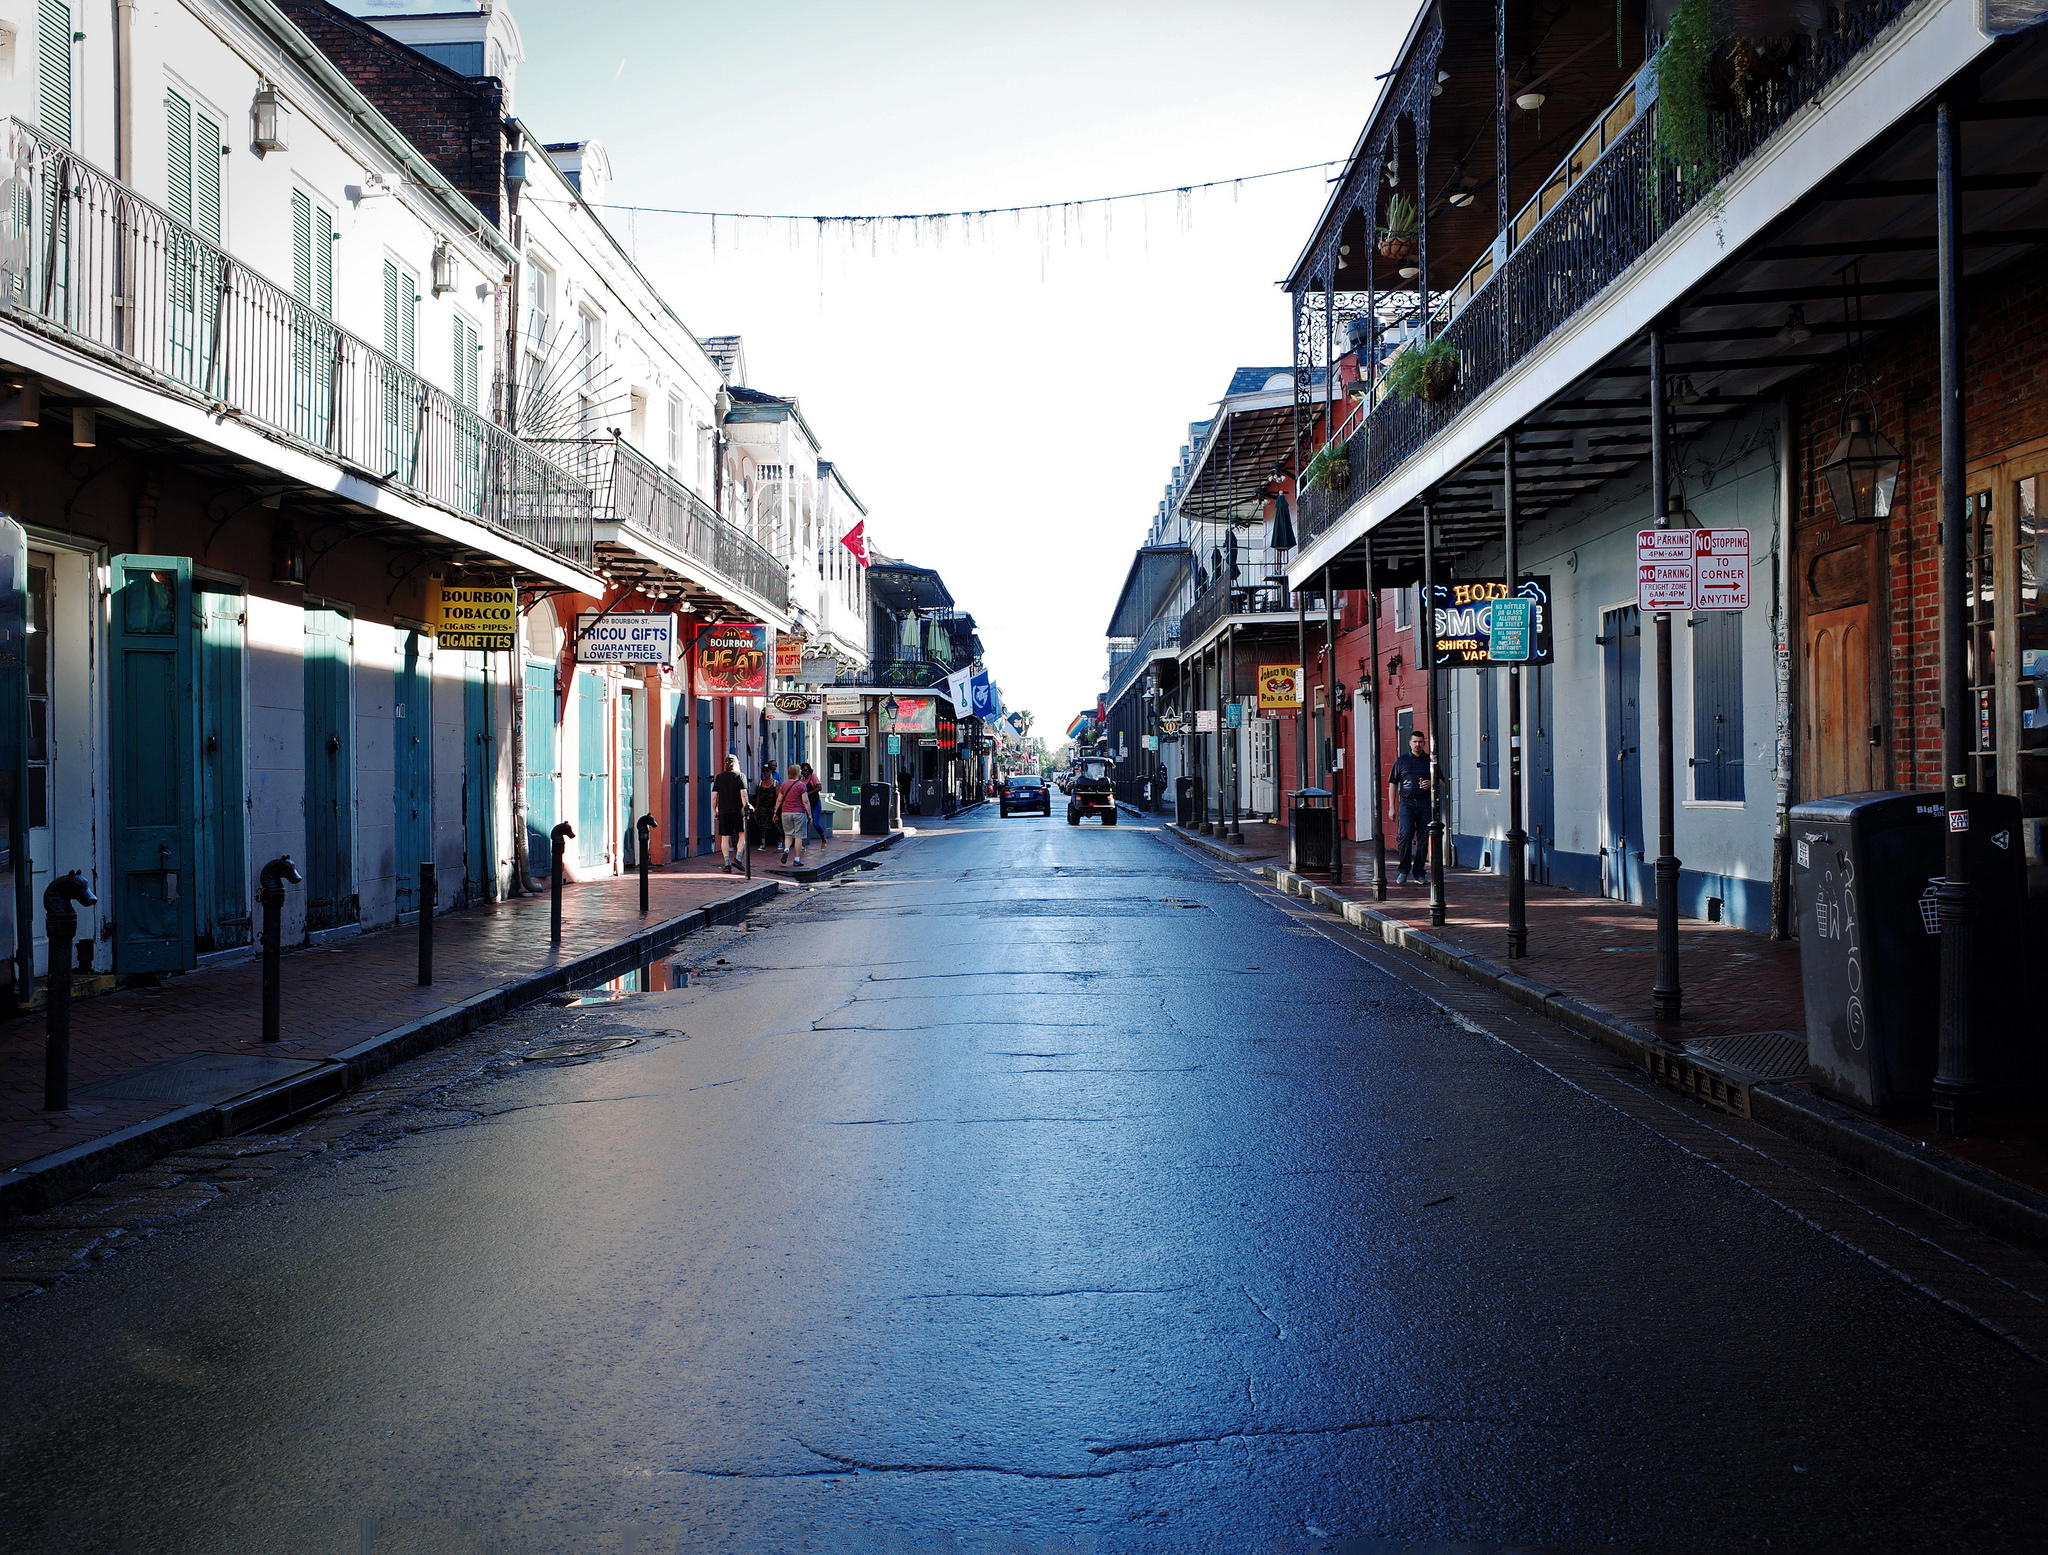 Activities for Rainy Days in the French Quarter